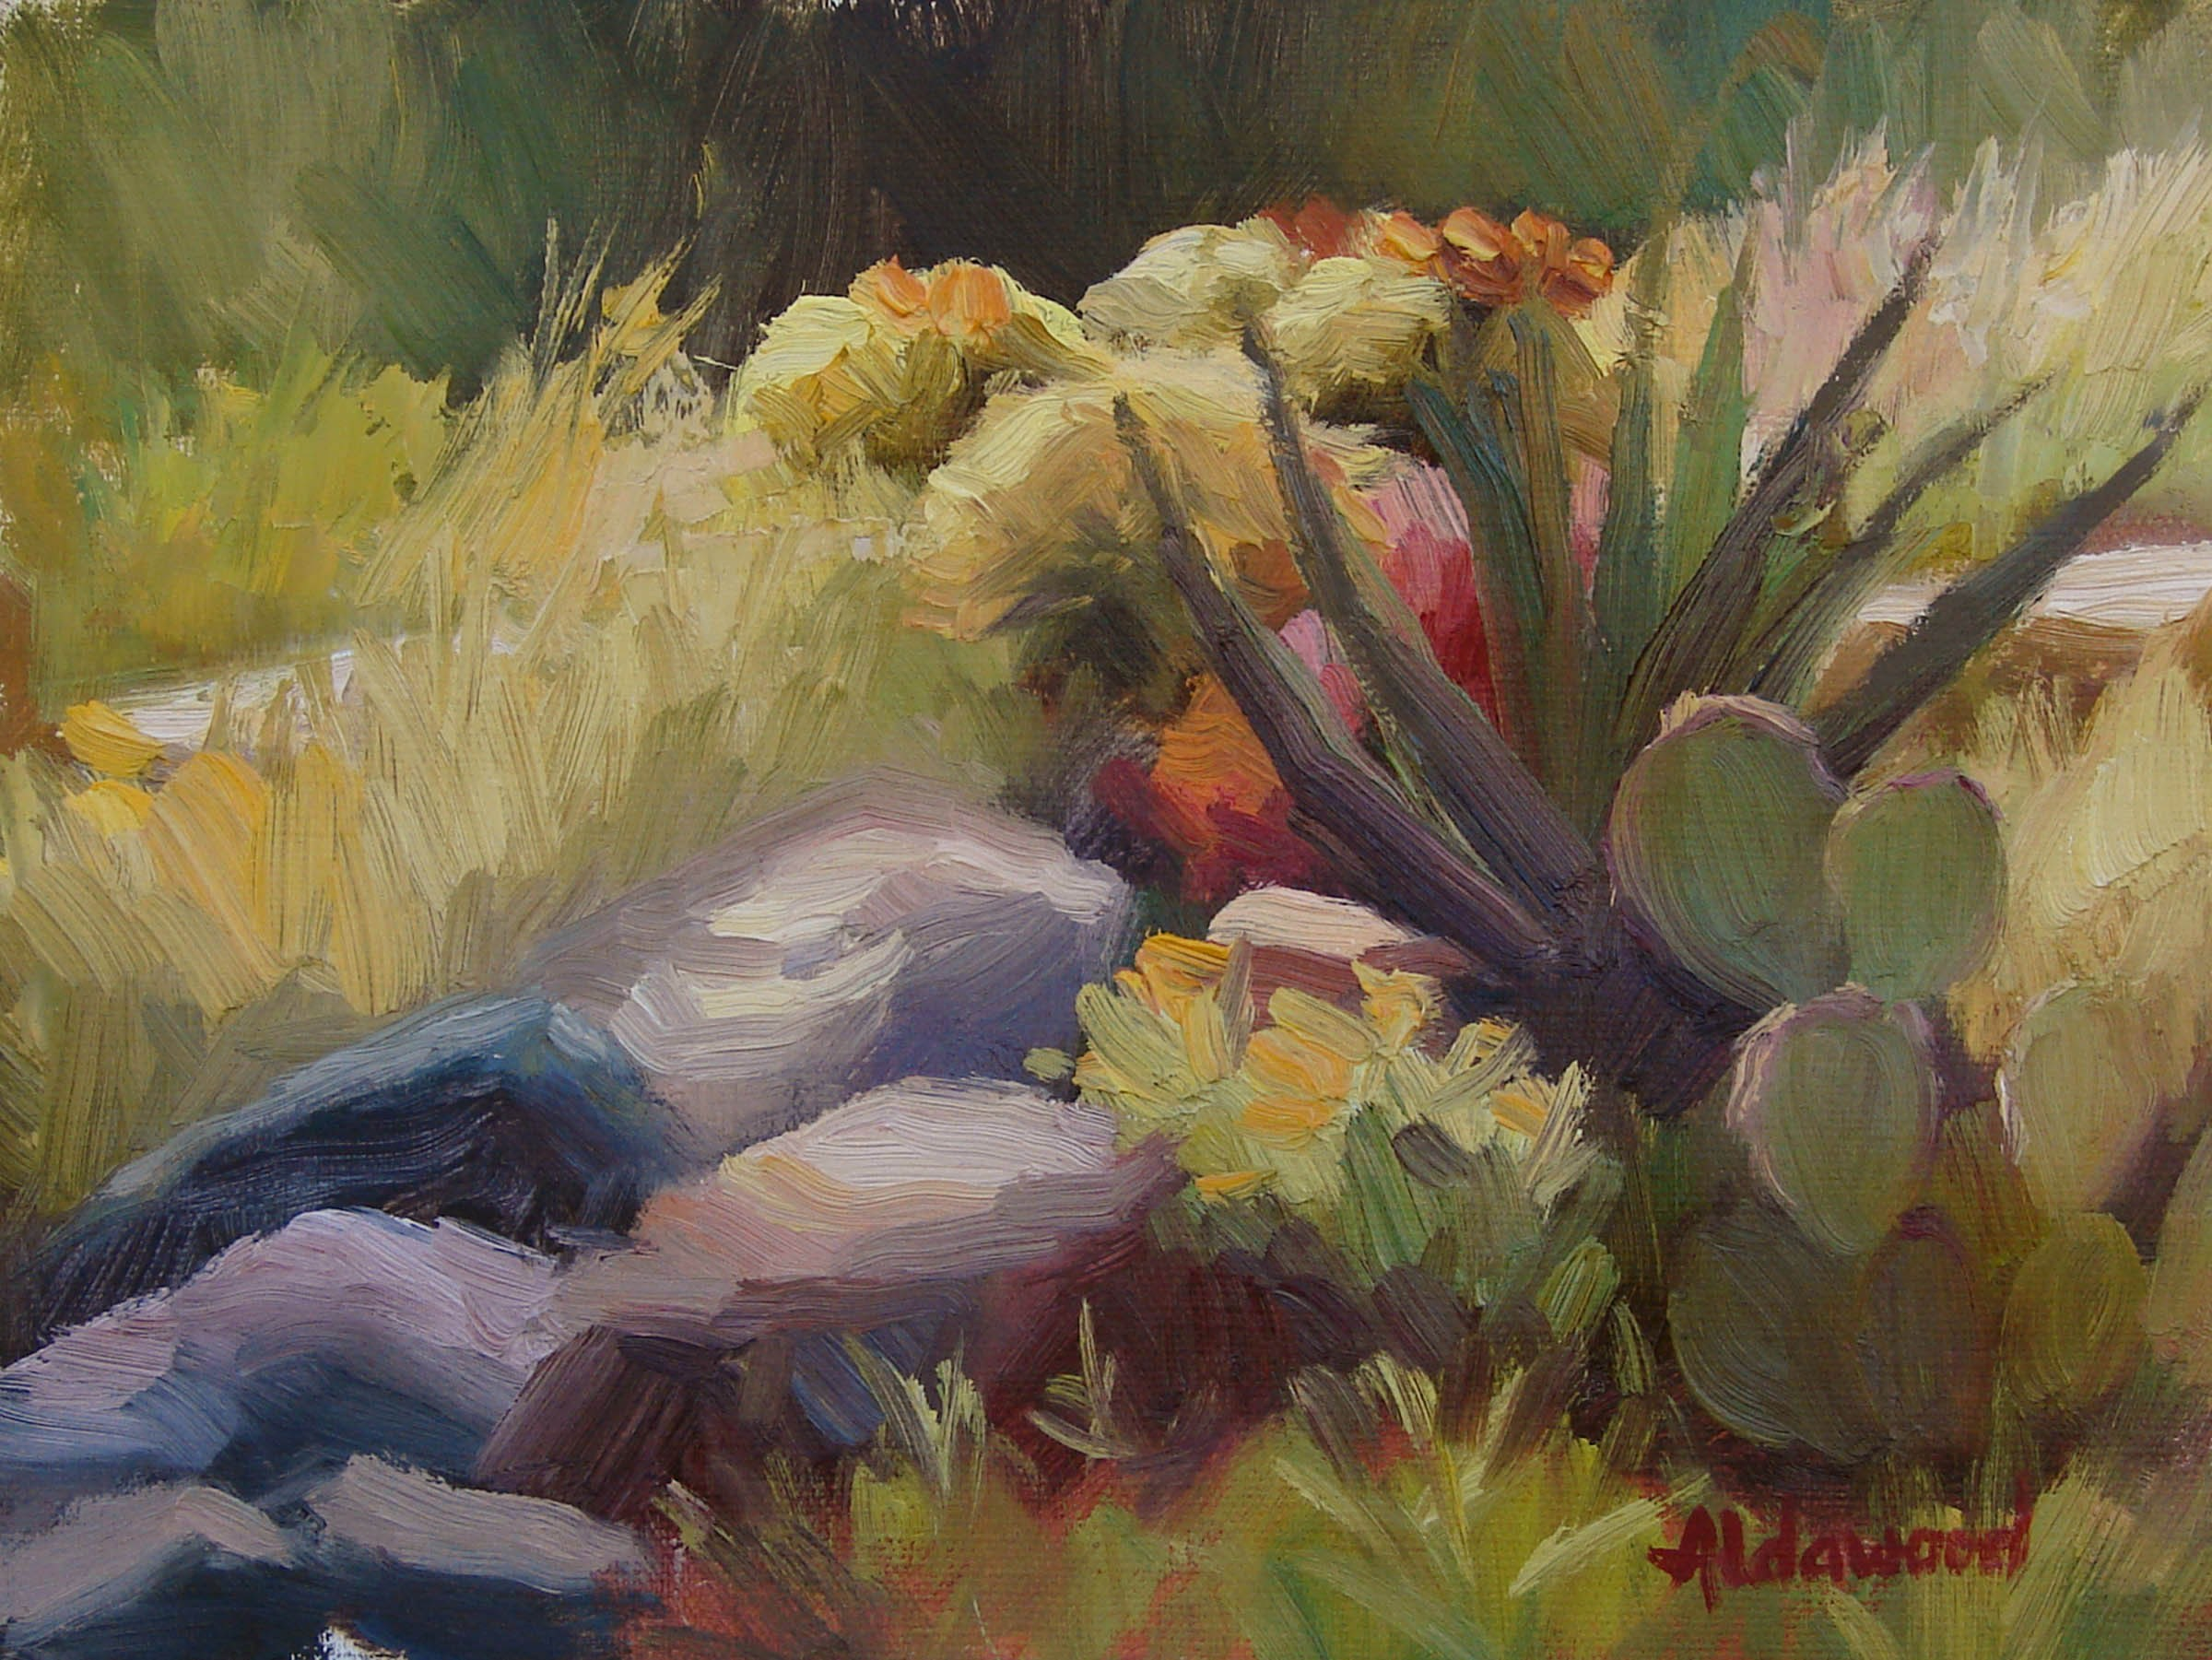 """Study for Barrel Cactus in Mid-day Sun"" original fine art by Sherri Aldawood"